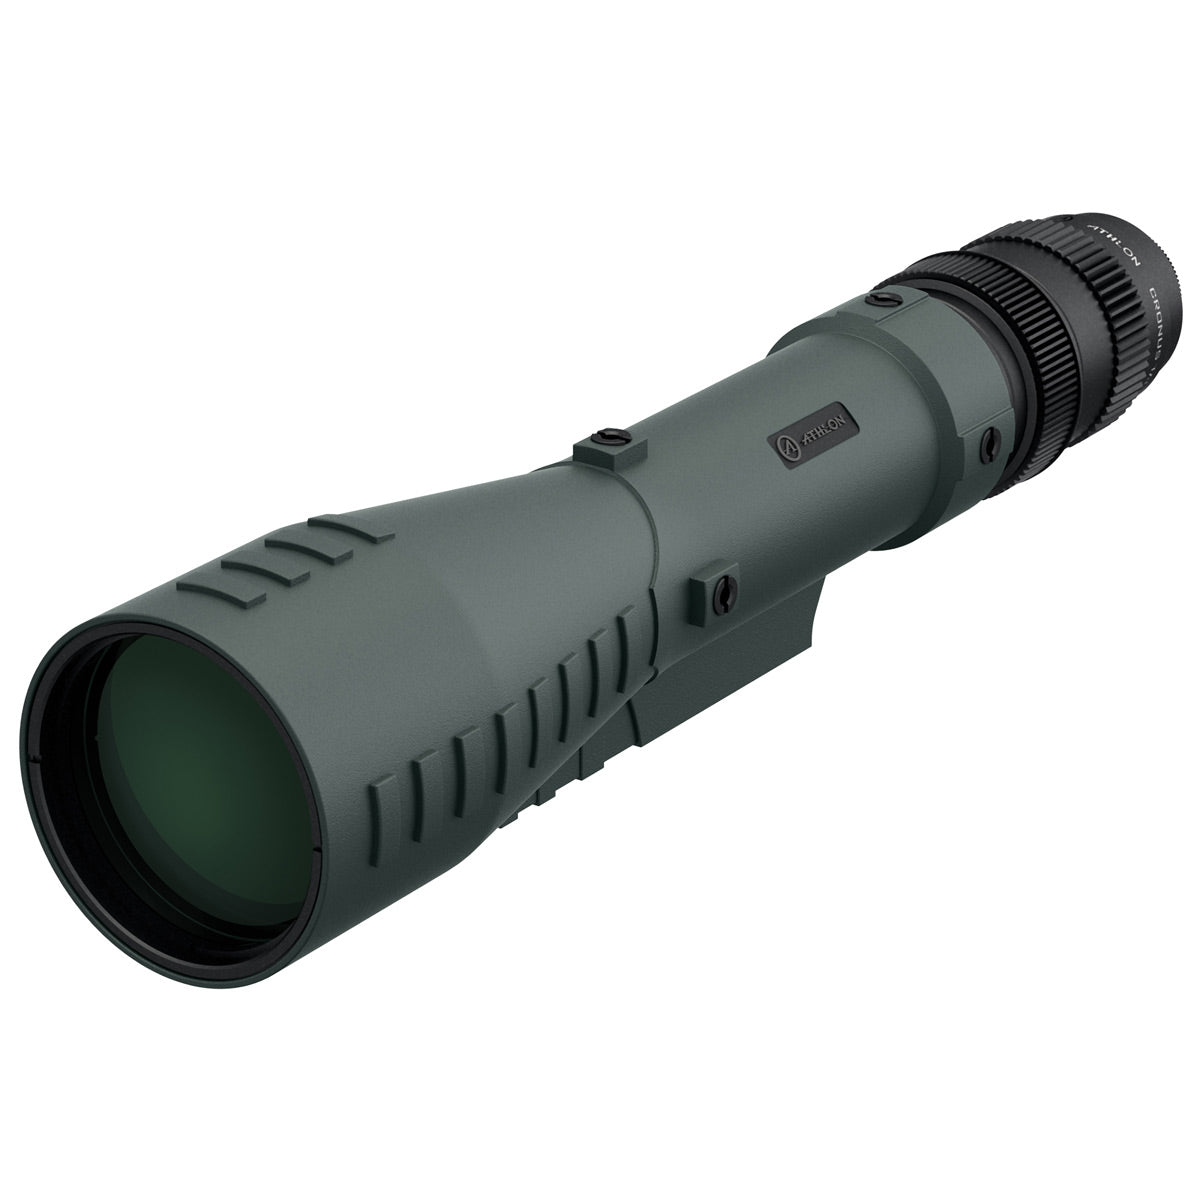 Athlon Optics Cronus Tactical 7-42x60mm UHD Spotting Scope